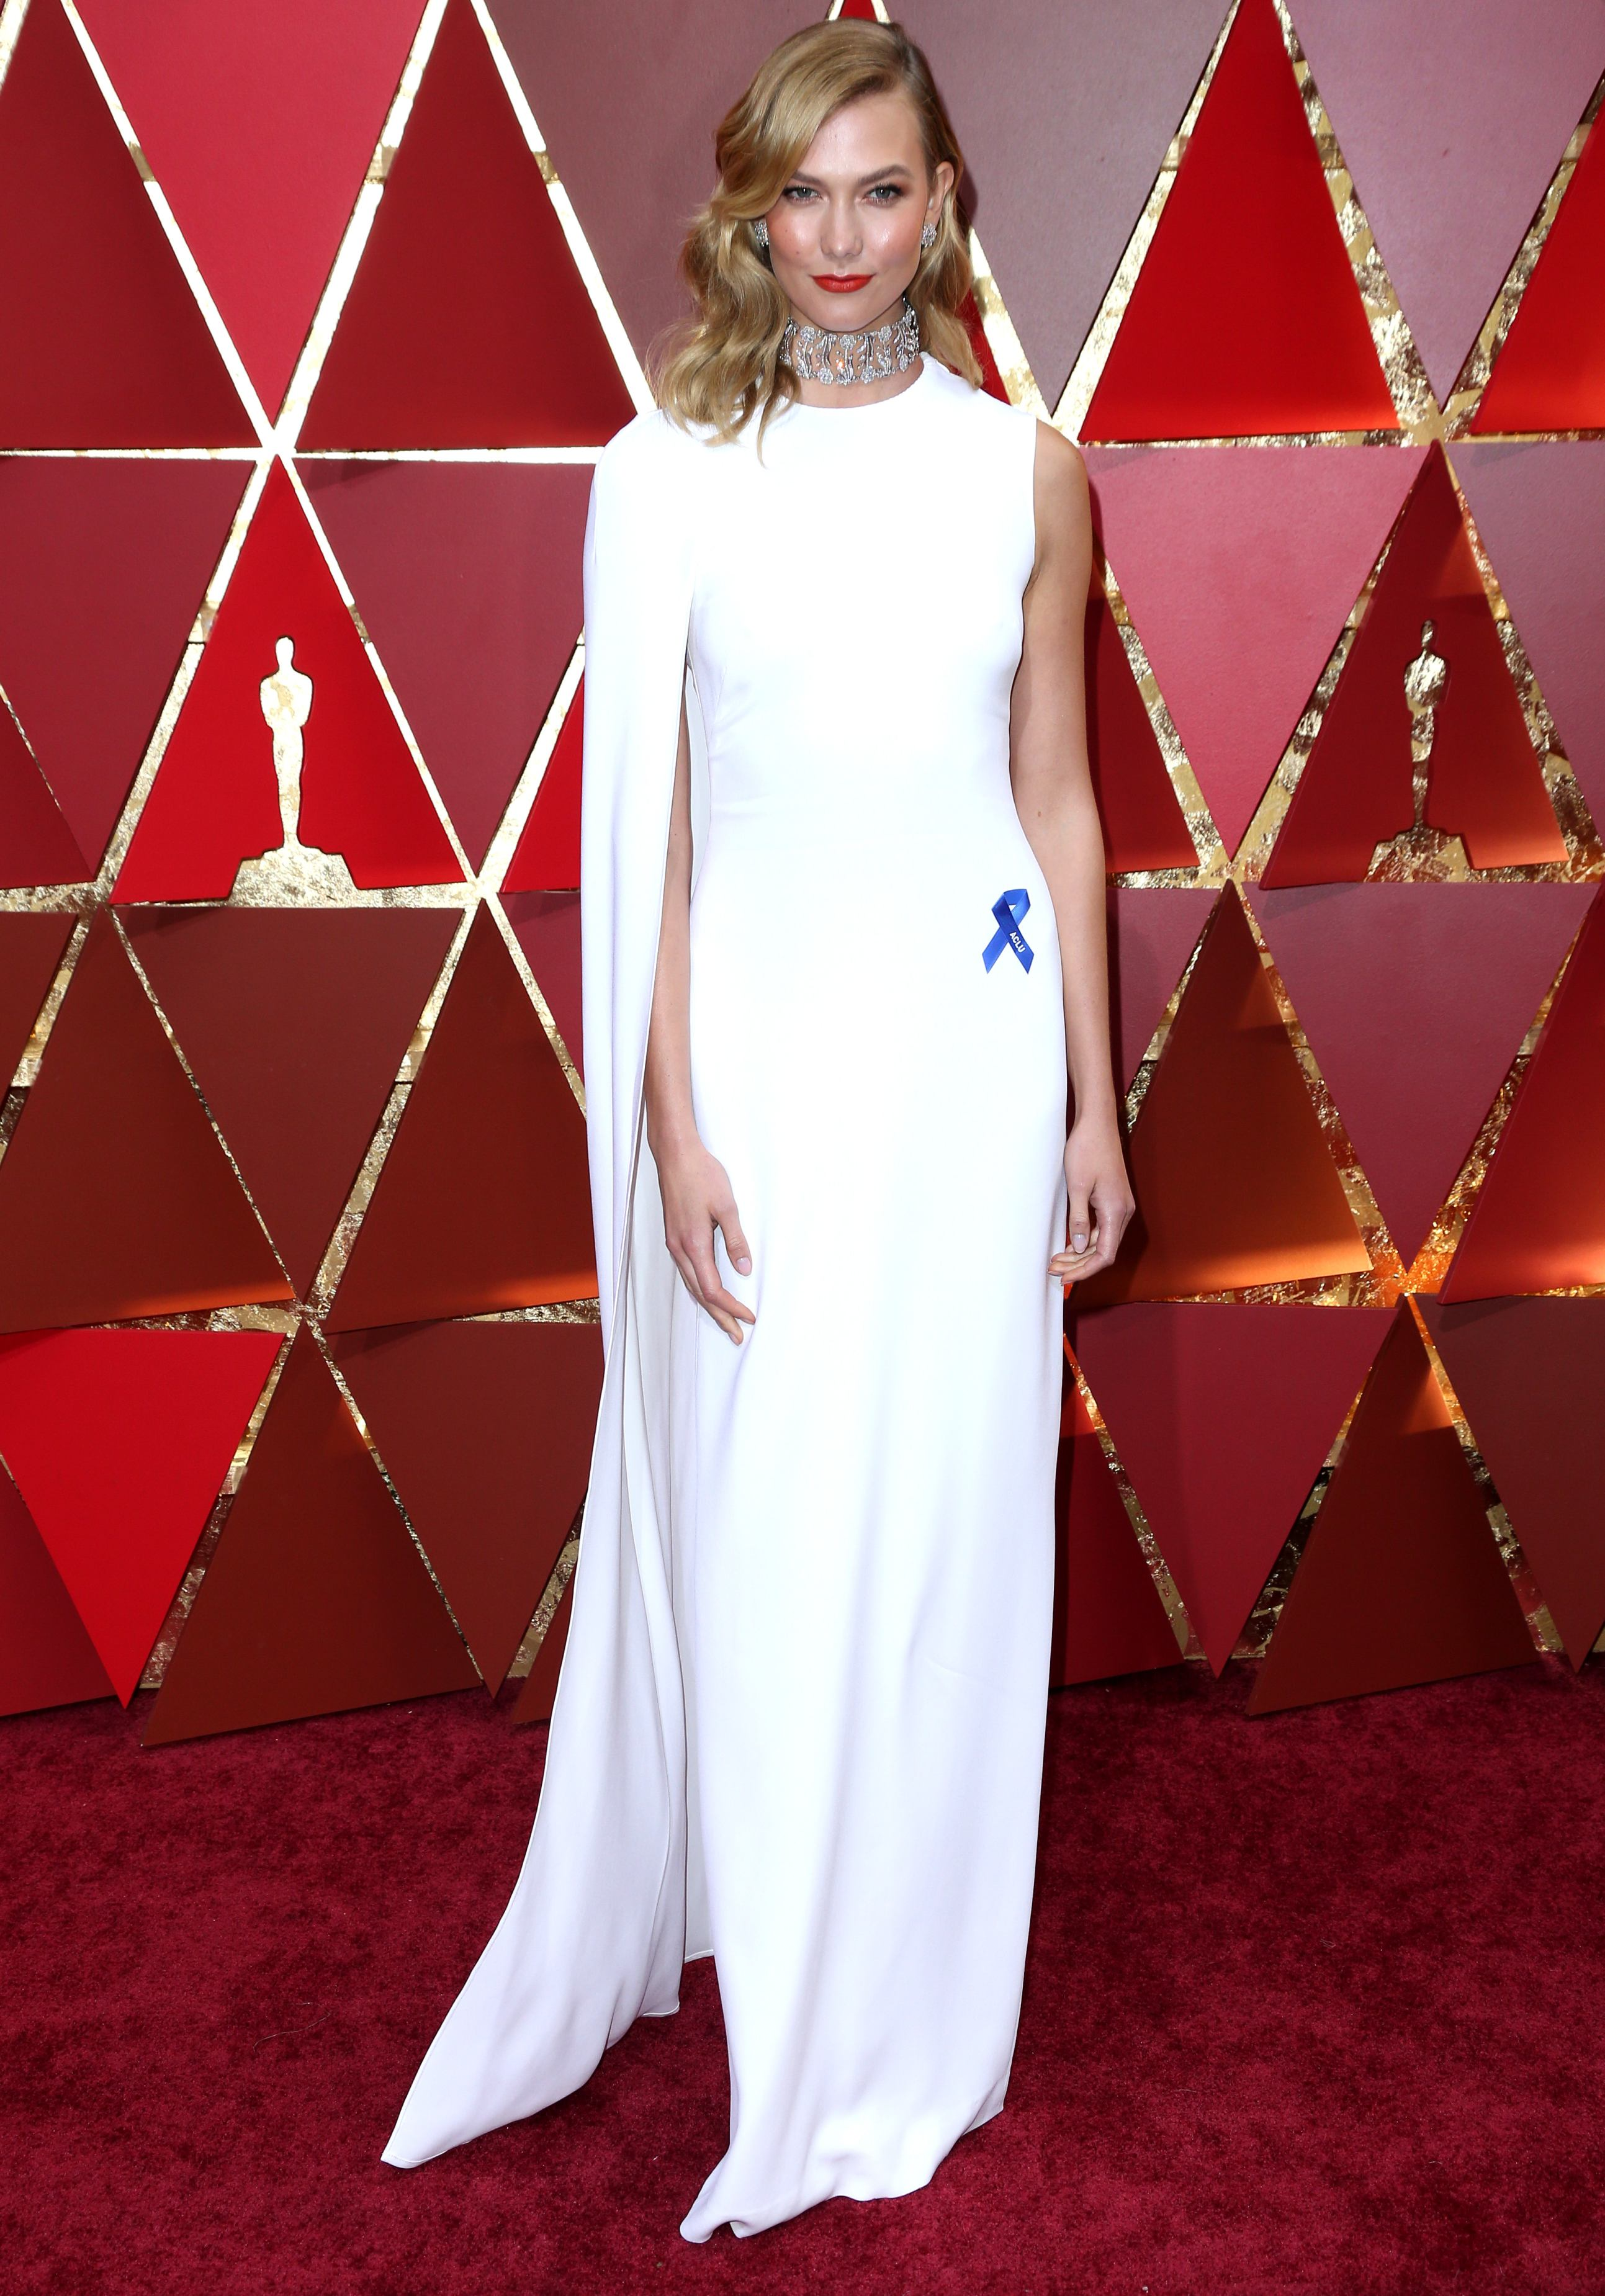 Mandatory Credit: Photo by Jim Smeal/BEI/Shutterstock (8434881bv) Karlie Kloss 89th Annual Academy Awards, Arrivals, Los Angeles, USA - 26 Feb 2017